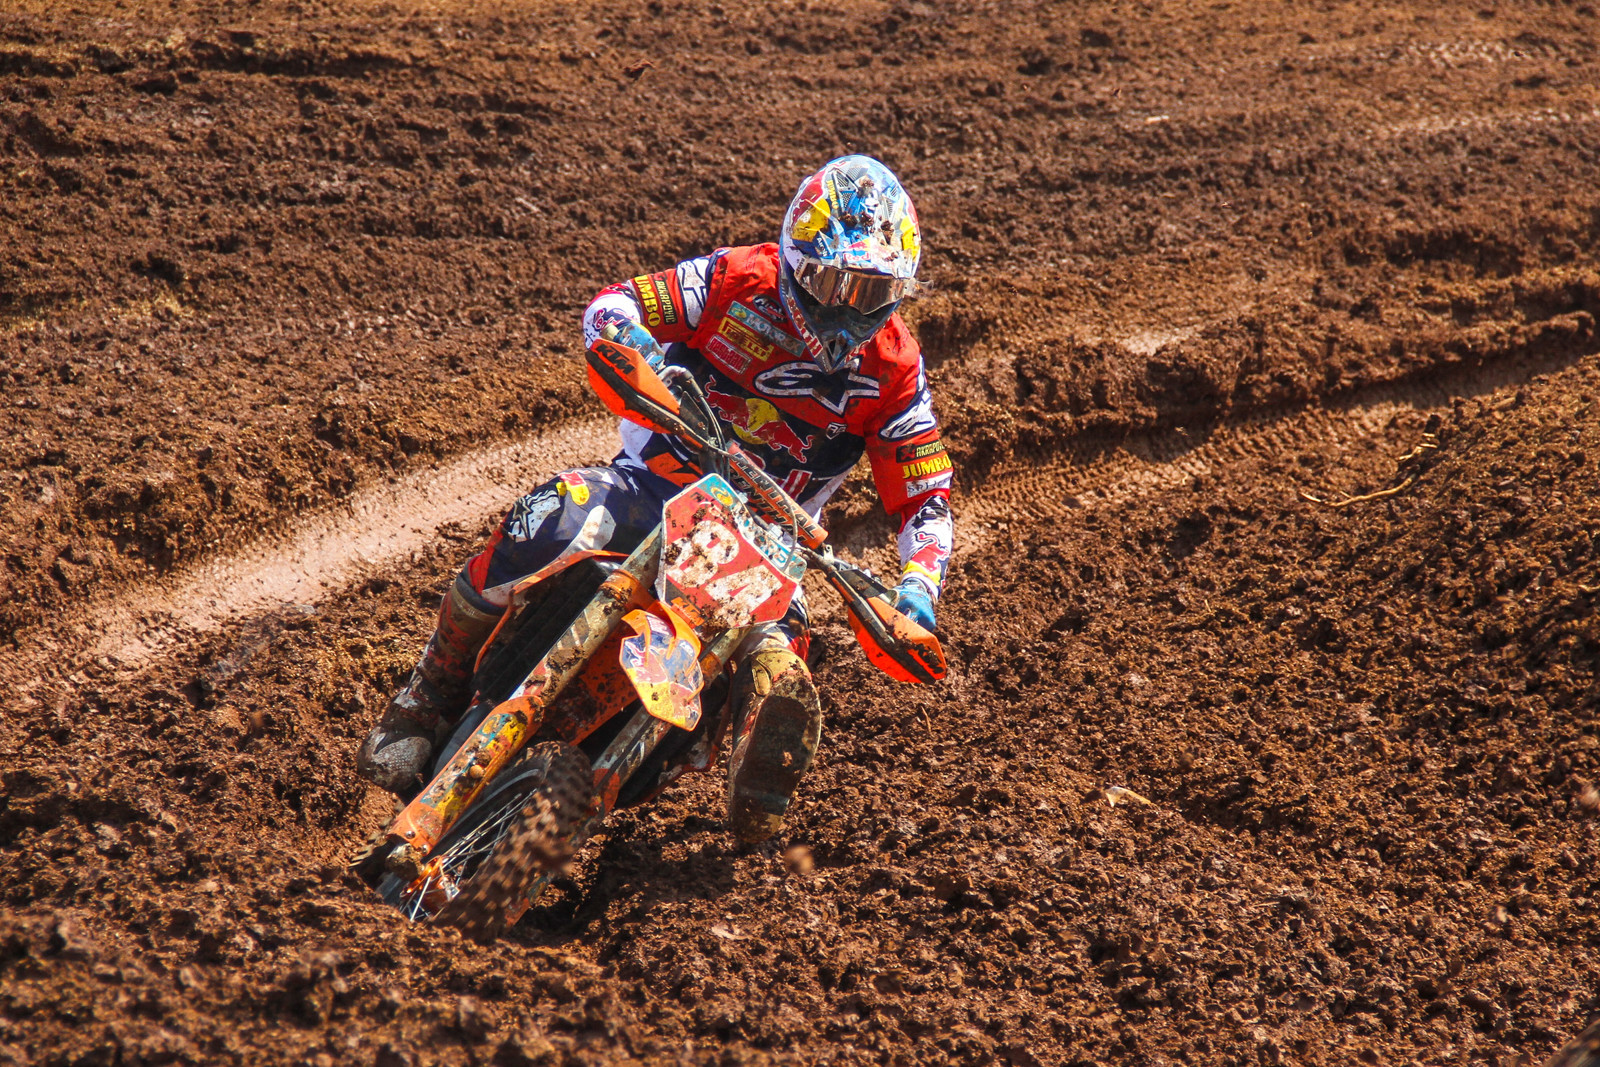 We noticed Herlings jersey looked a bit bulkier than usual, it seems the Dutchman added an extra layer of protection after his recent injury.